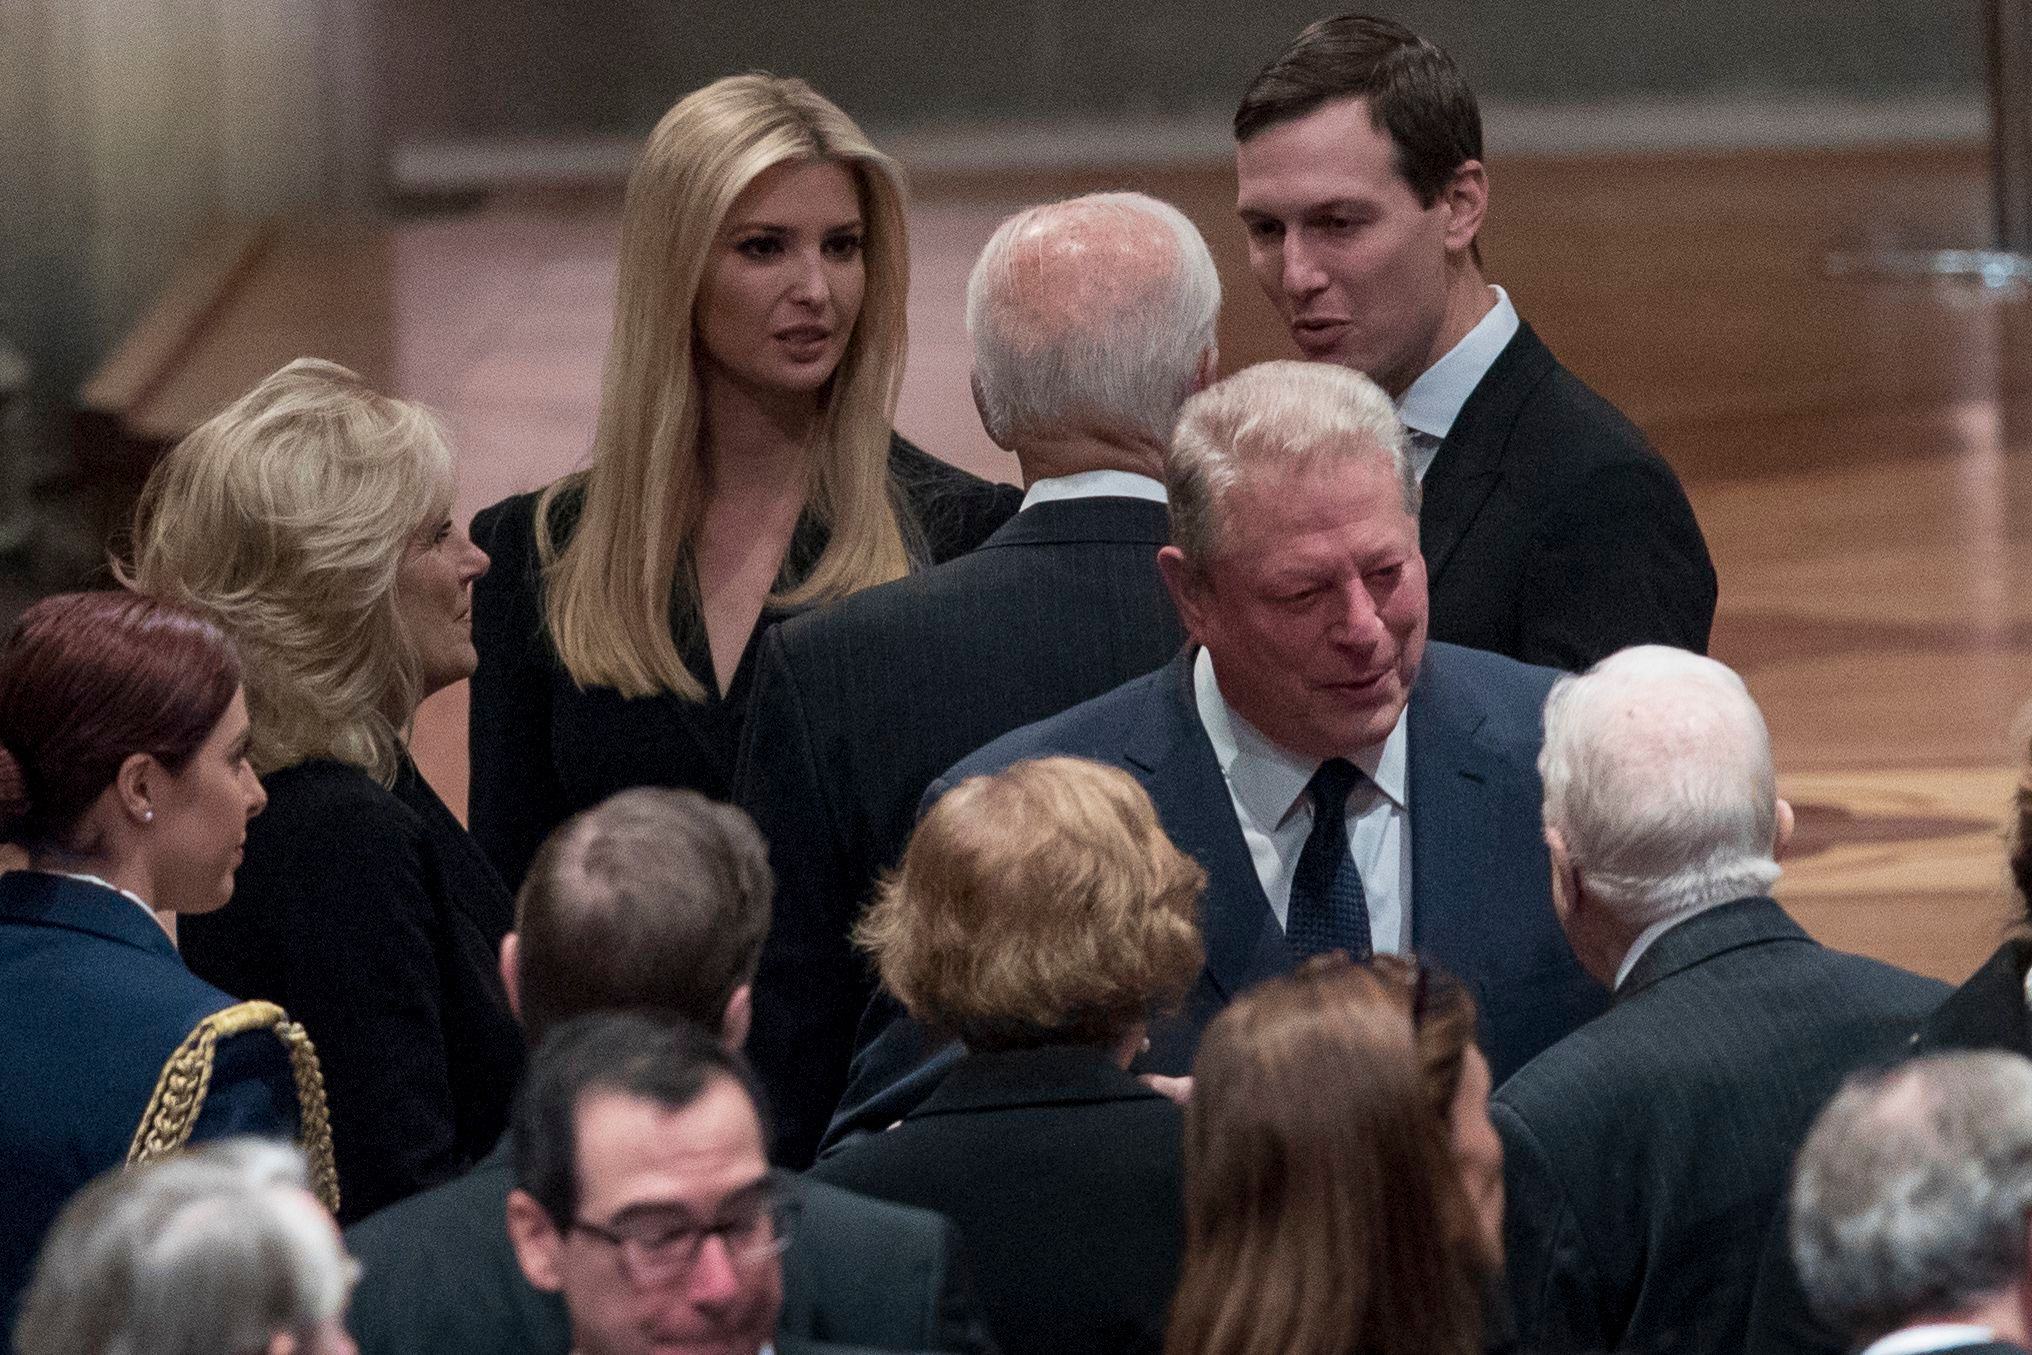 Former Vice President Joe Biden, and his wife Jill Biden, speak with Ivanka Trump, the daughter of President Donald Trump, and her husband, President Donald Trump's White House Senior Adviser Jared Kushner, as former Vice President Al Gore, speak to former President Jimmy Carter, and former first lady Rosalynn Carter, before a State Funeral for former President George H.W. Bush at the National Cathedral, in Washington, DC on Dec. 5, 2018.